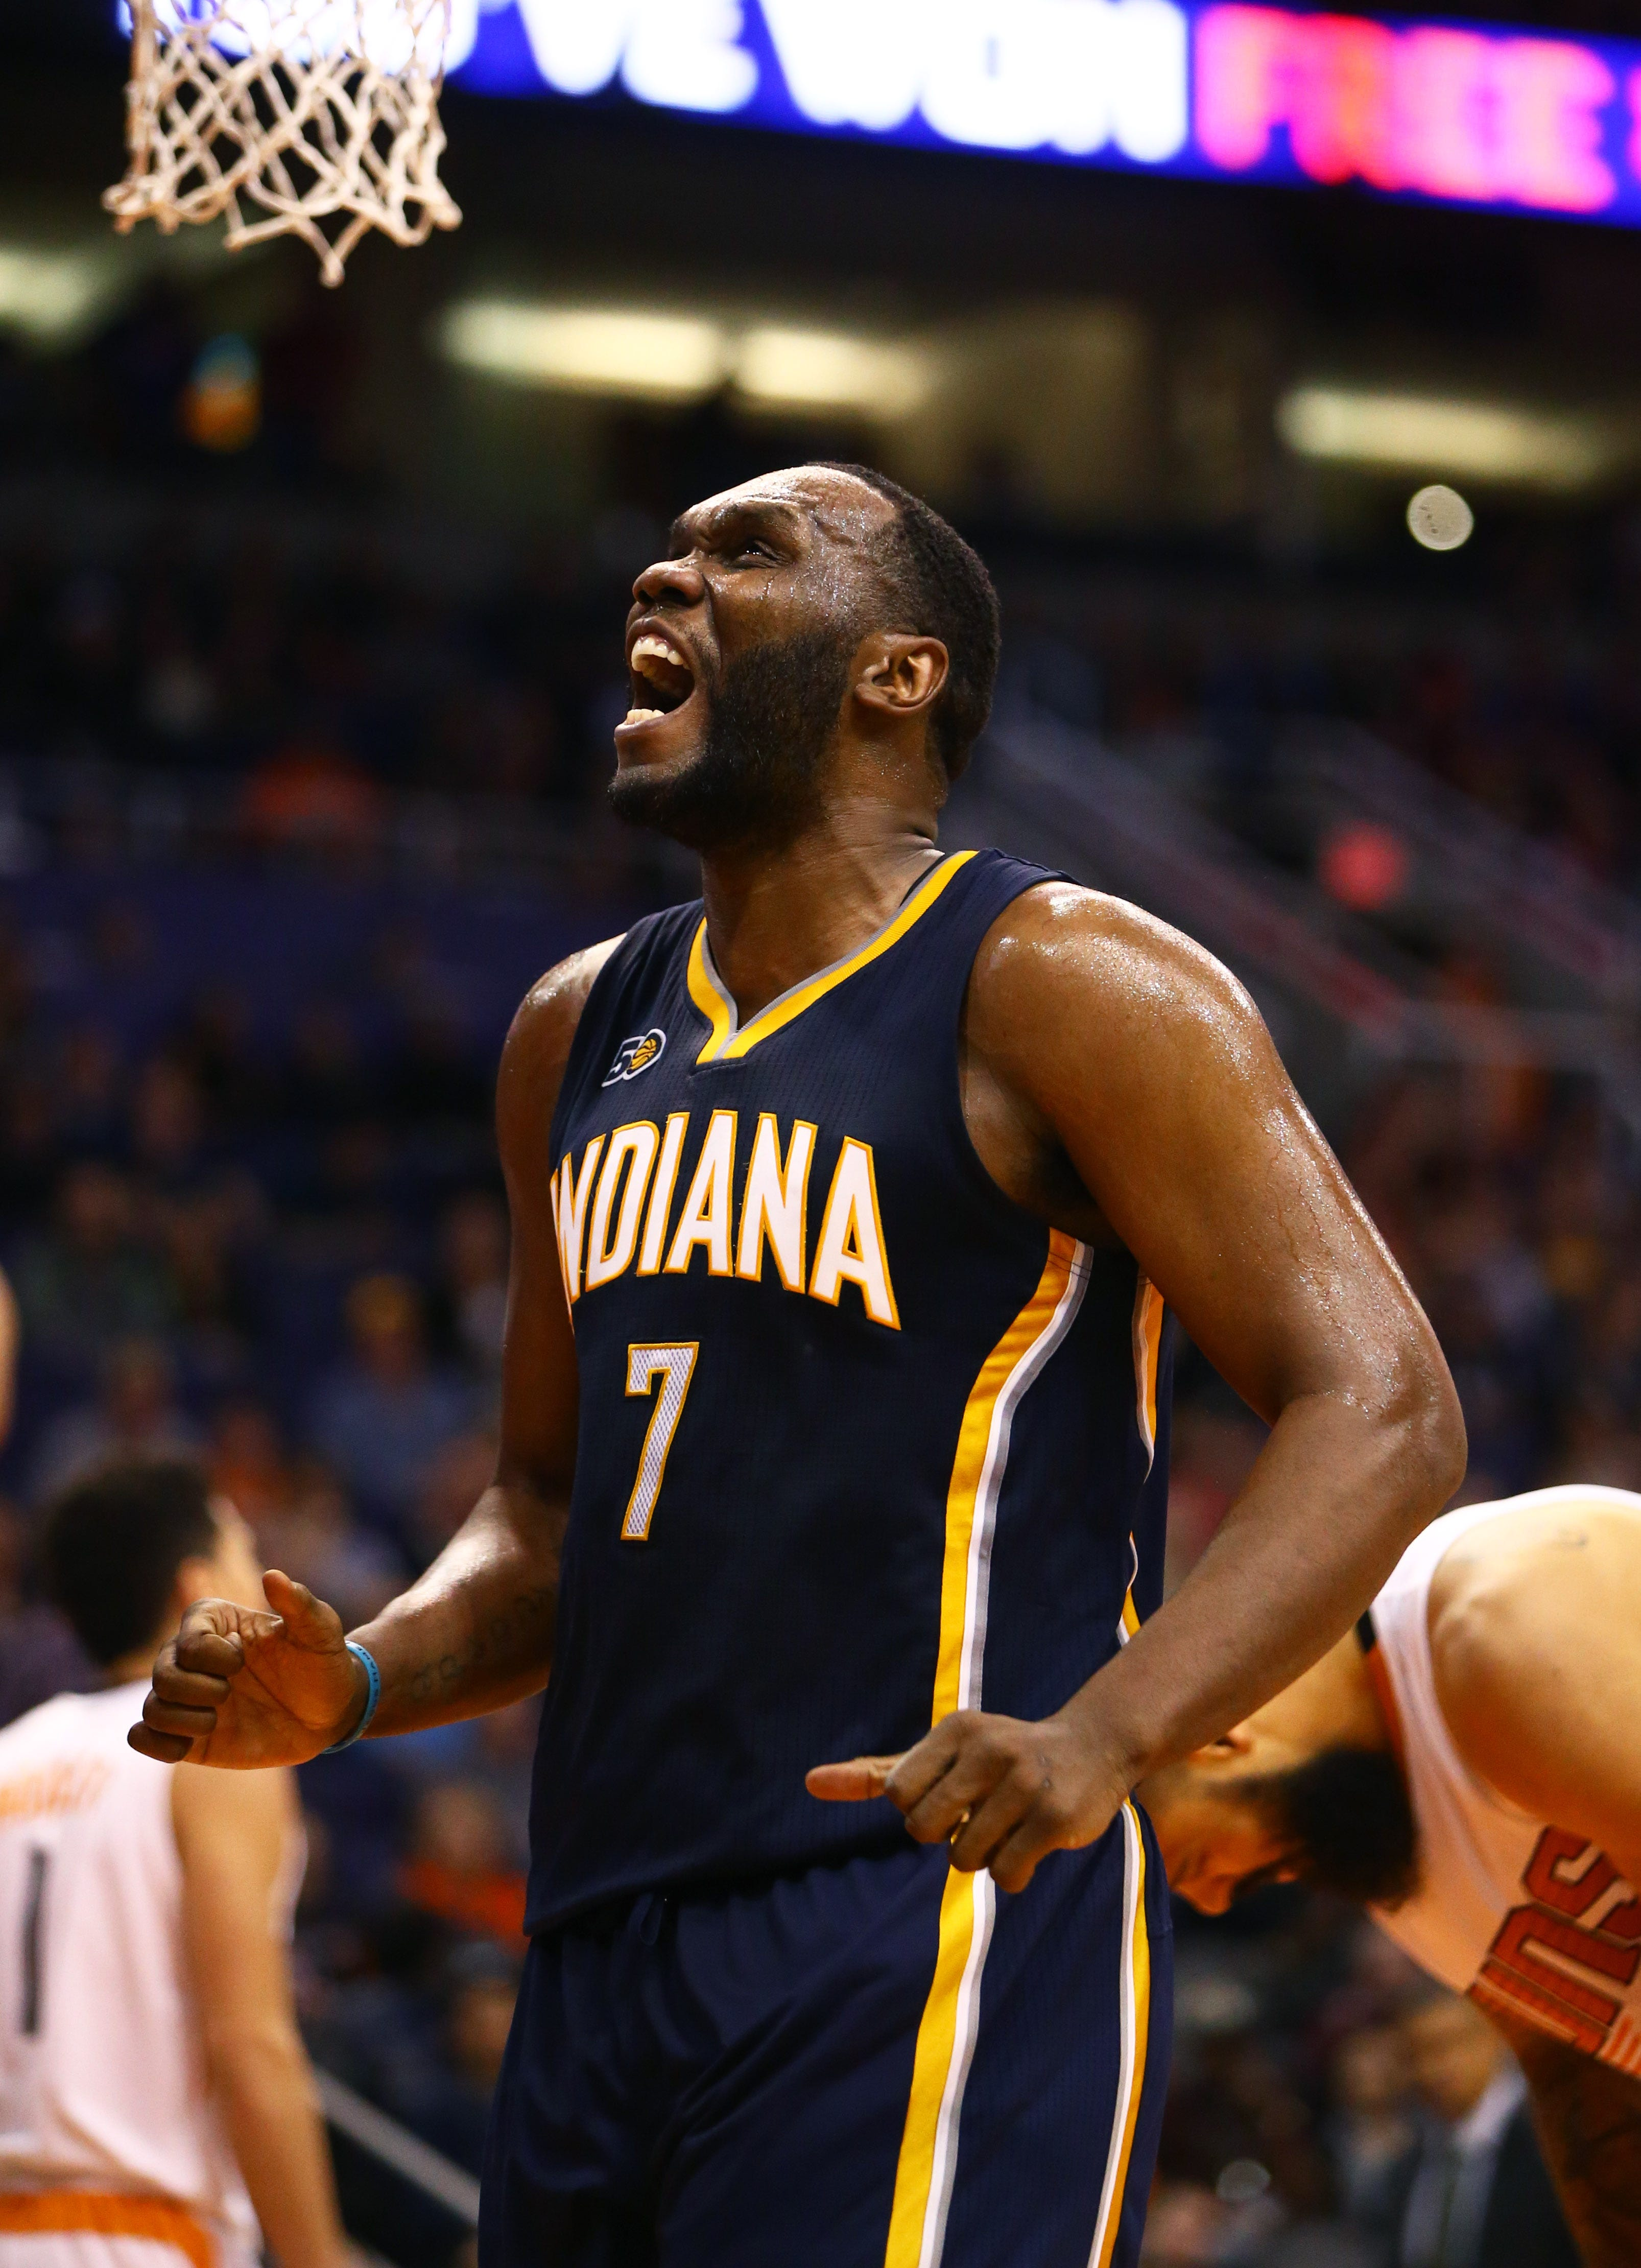 Al Jefferson, now 40 pounds lighter, determined to adapt to up-tempo NBA